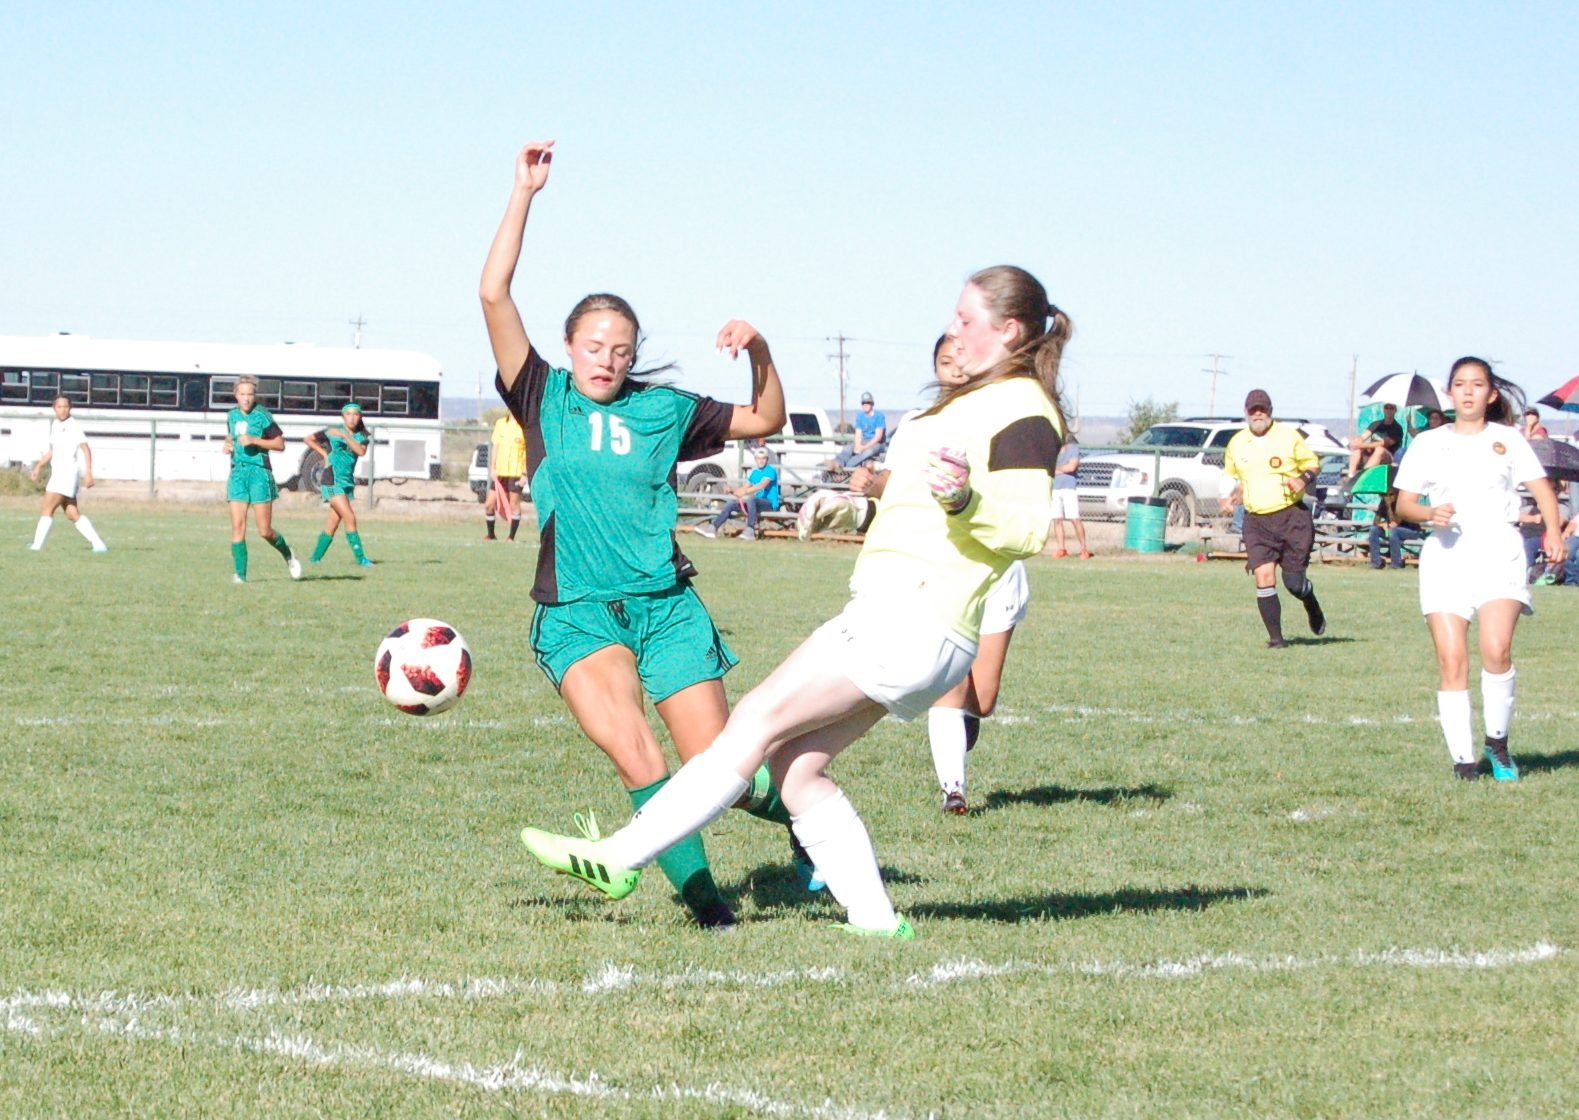 Moriarty Lady Pintos win one, drop two heading into district games